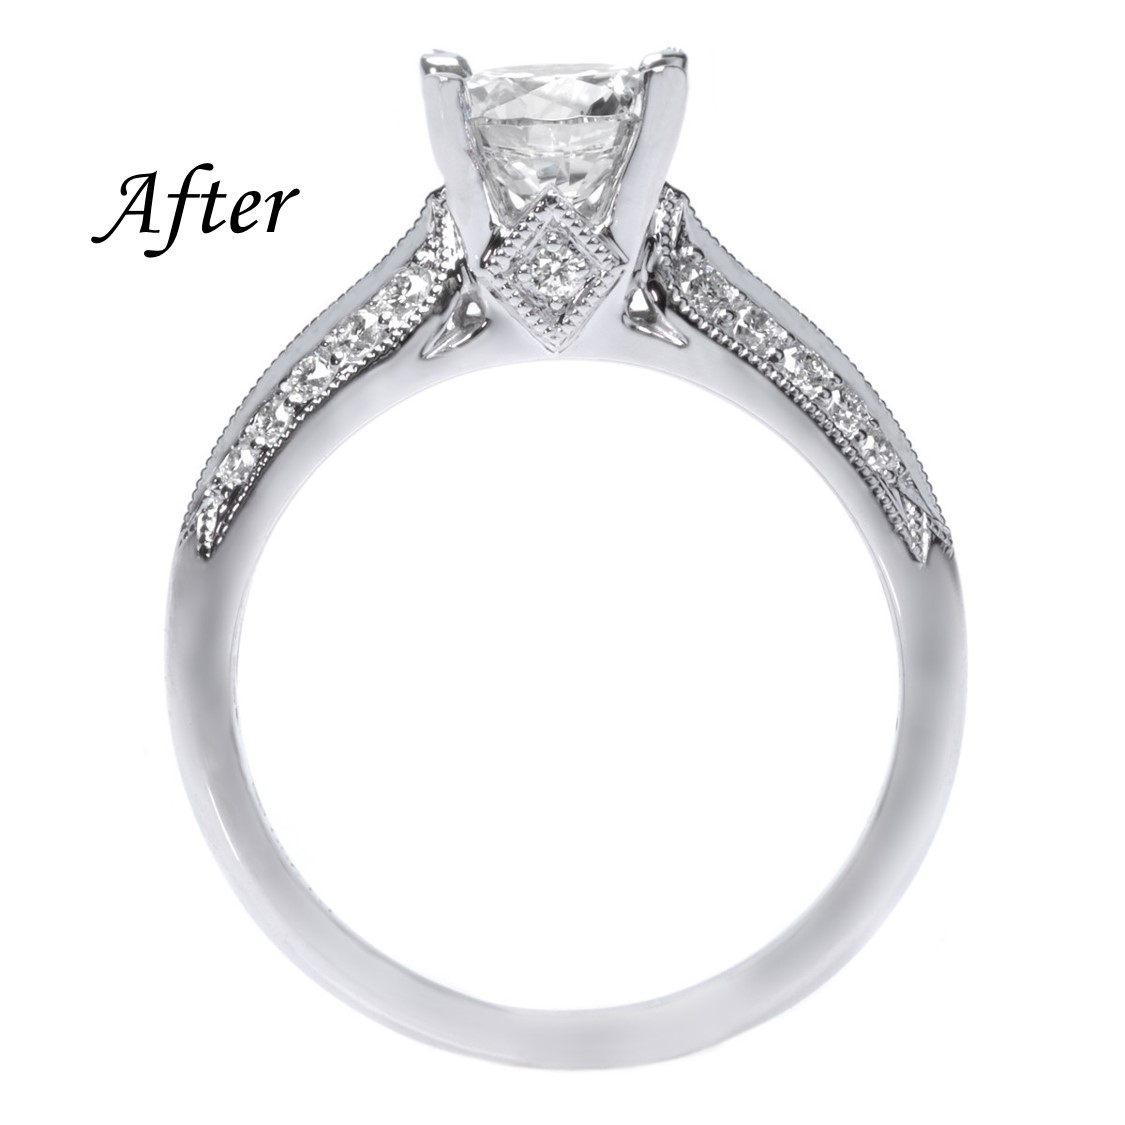 6 Ways To Reset Your Solitaire Engagement Ring - Upgrade Setting